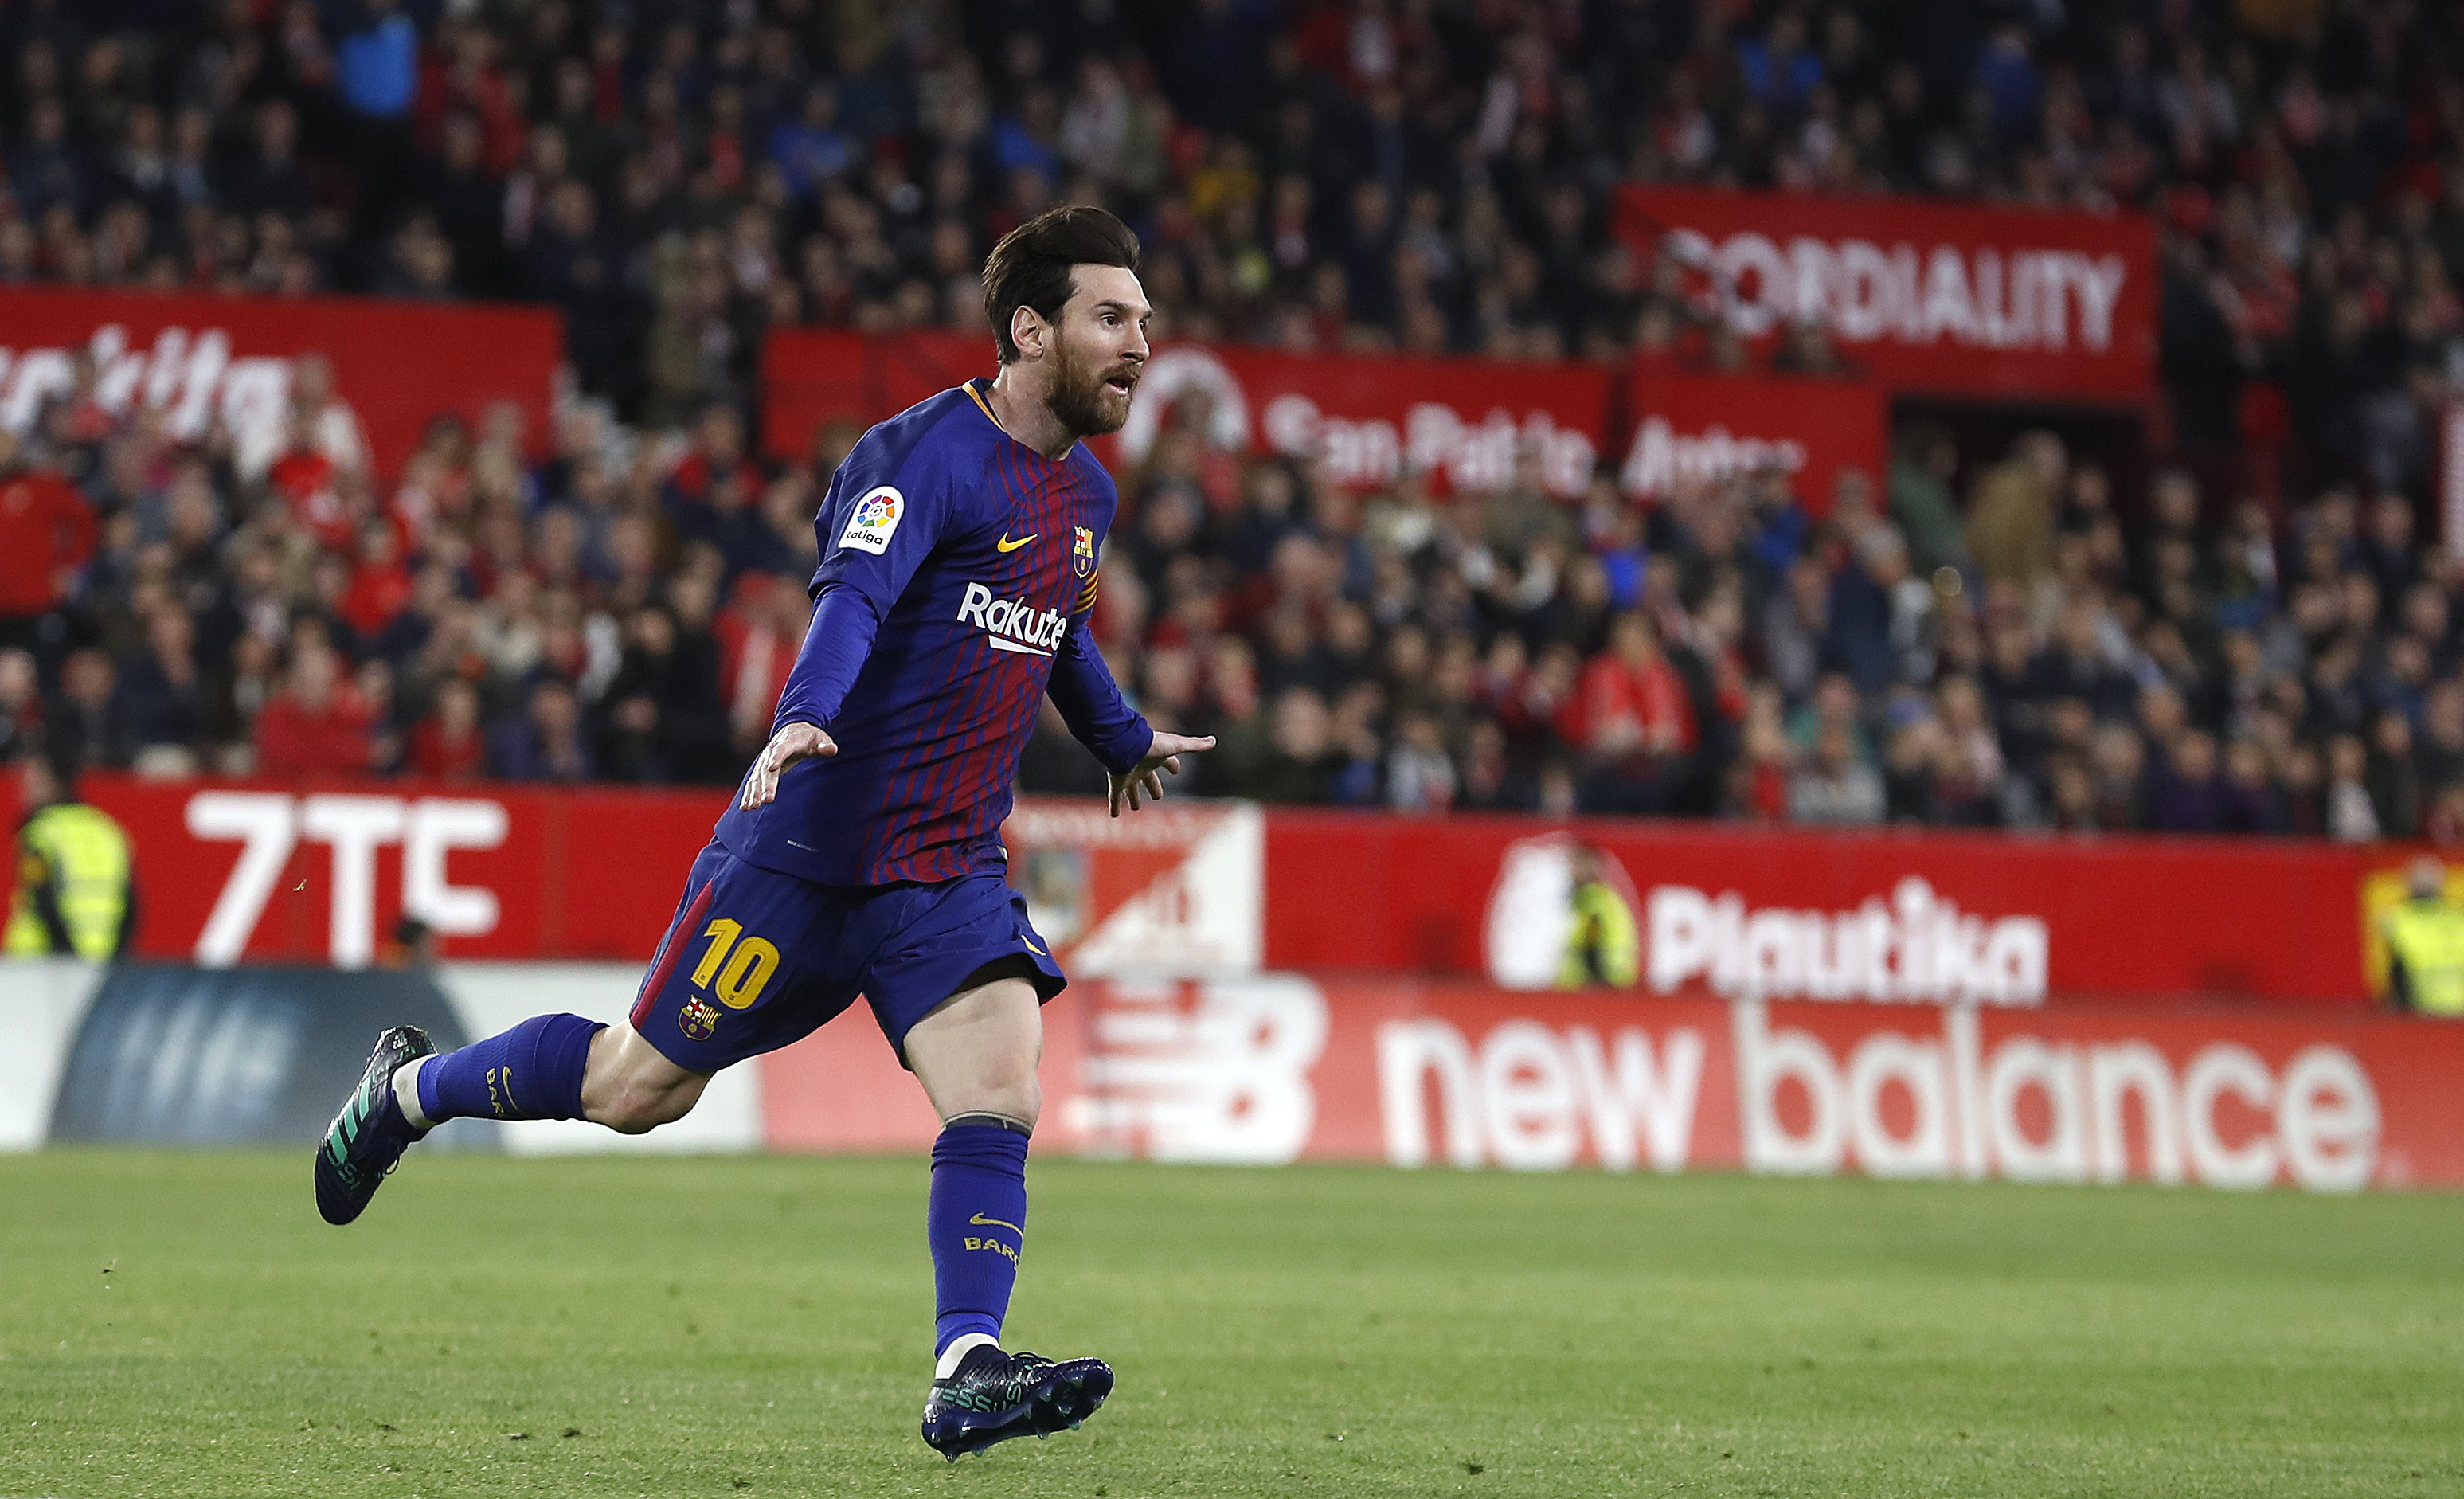 Lionel Messi starred in Barcelona's draw with Sevilla despite carrying an injury